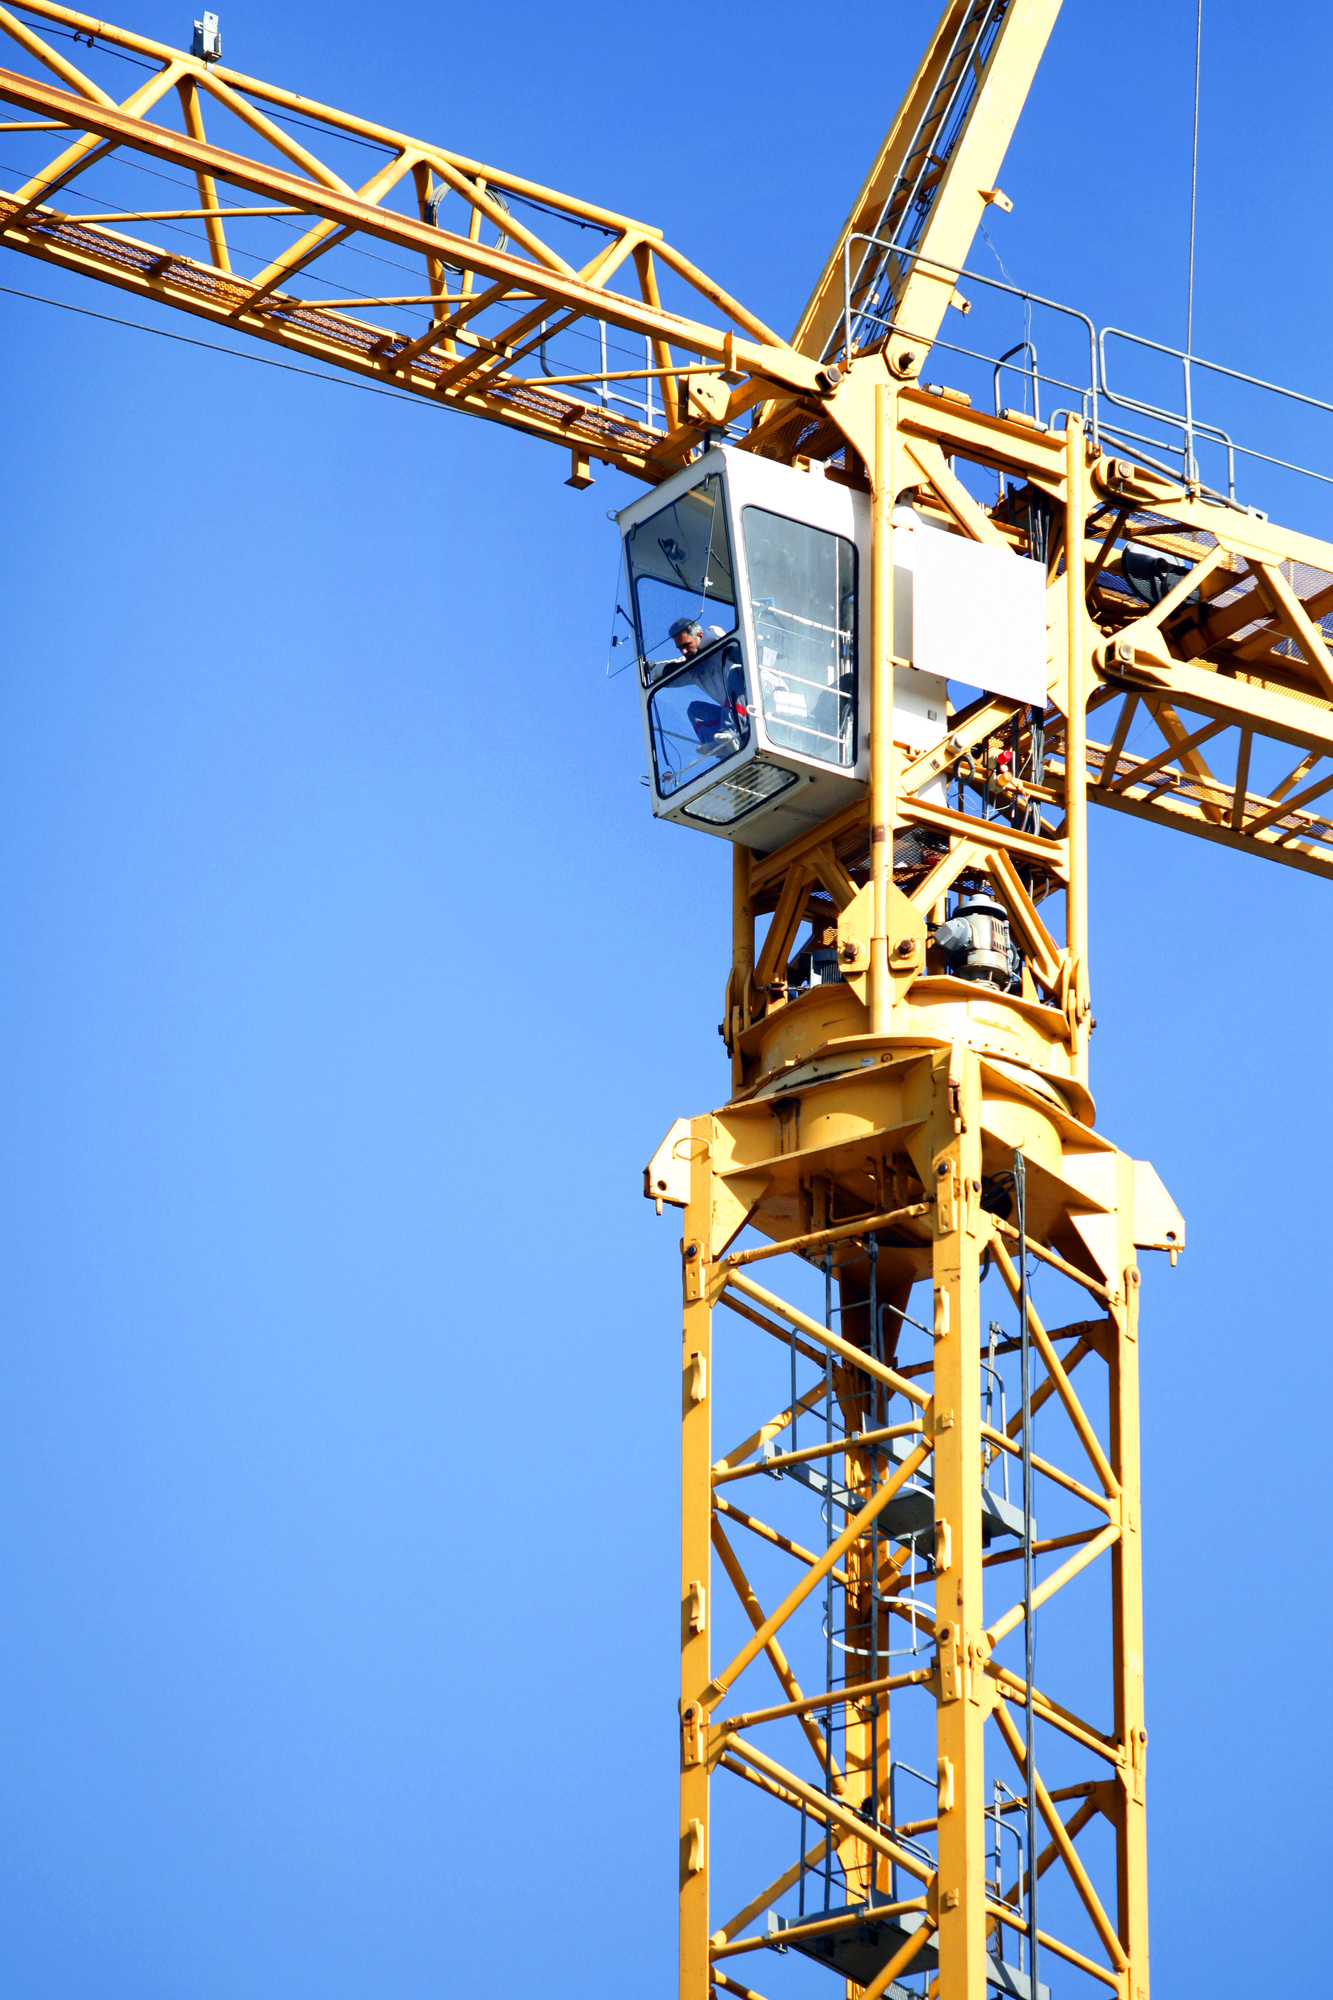 Cameras on Cranes from The Operator's Point of View